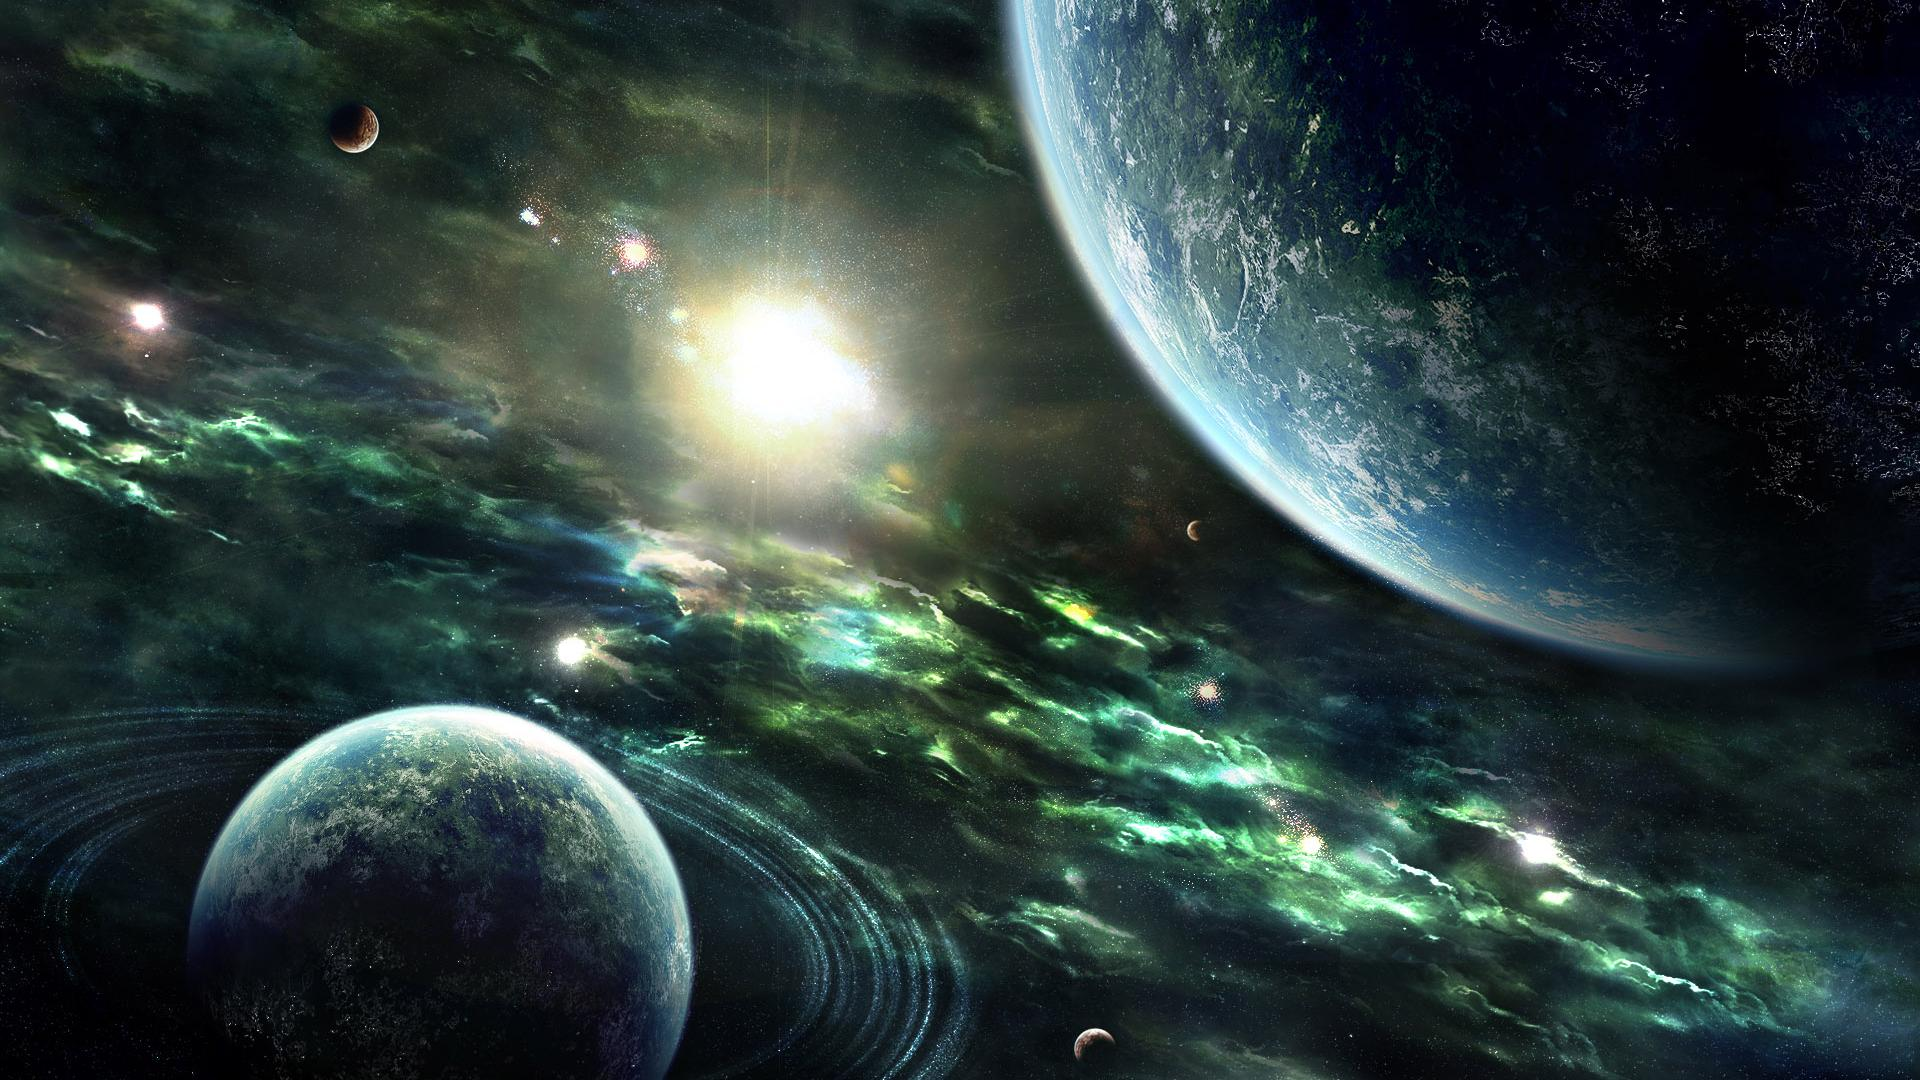 Space Wallpaper Hd 1920X1080 wallpaper   486307 1920x1080